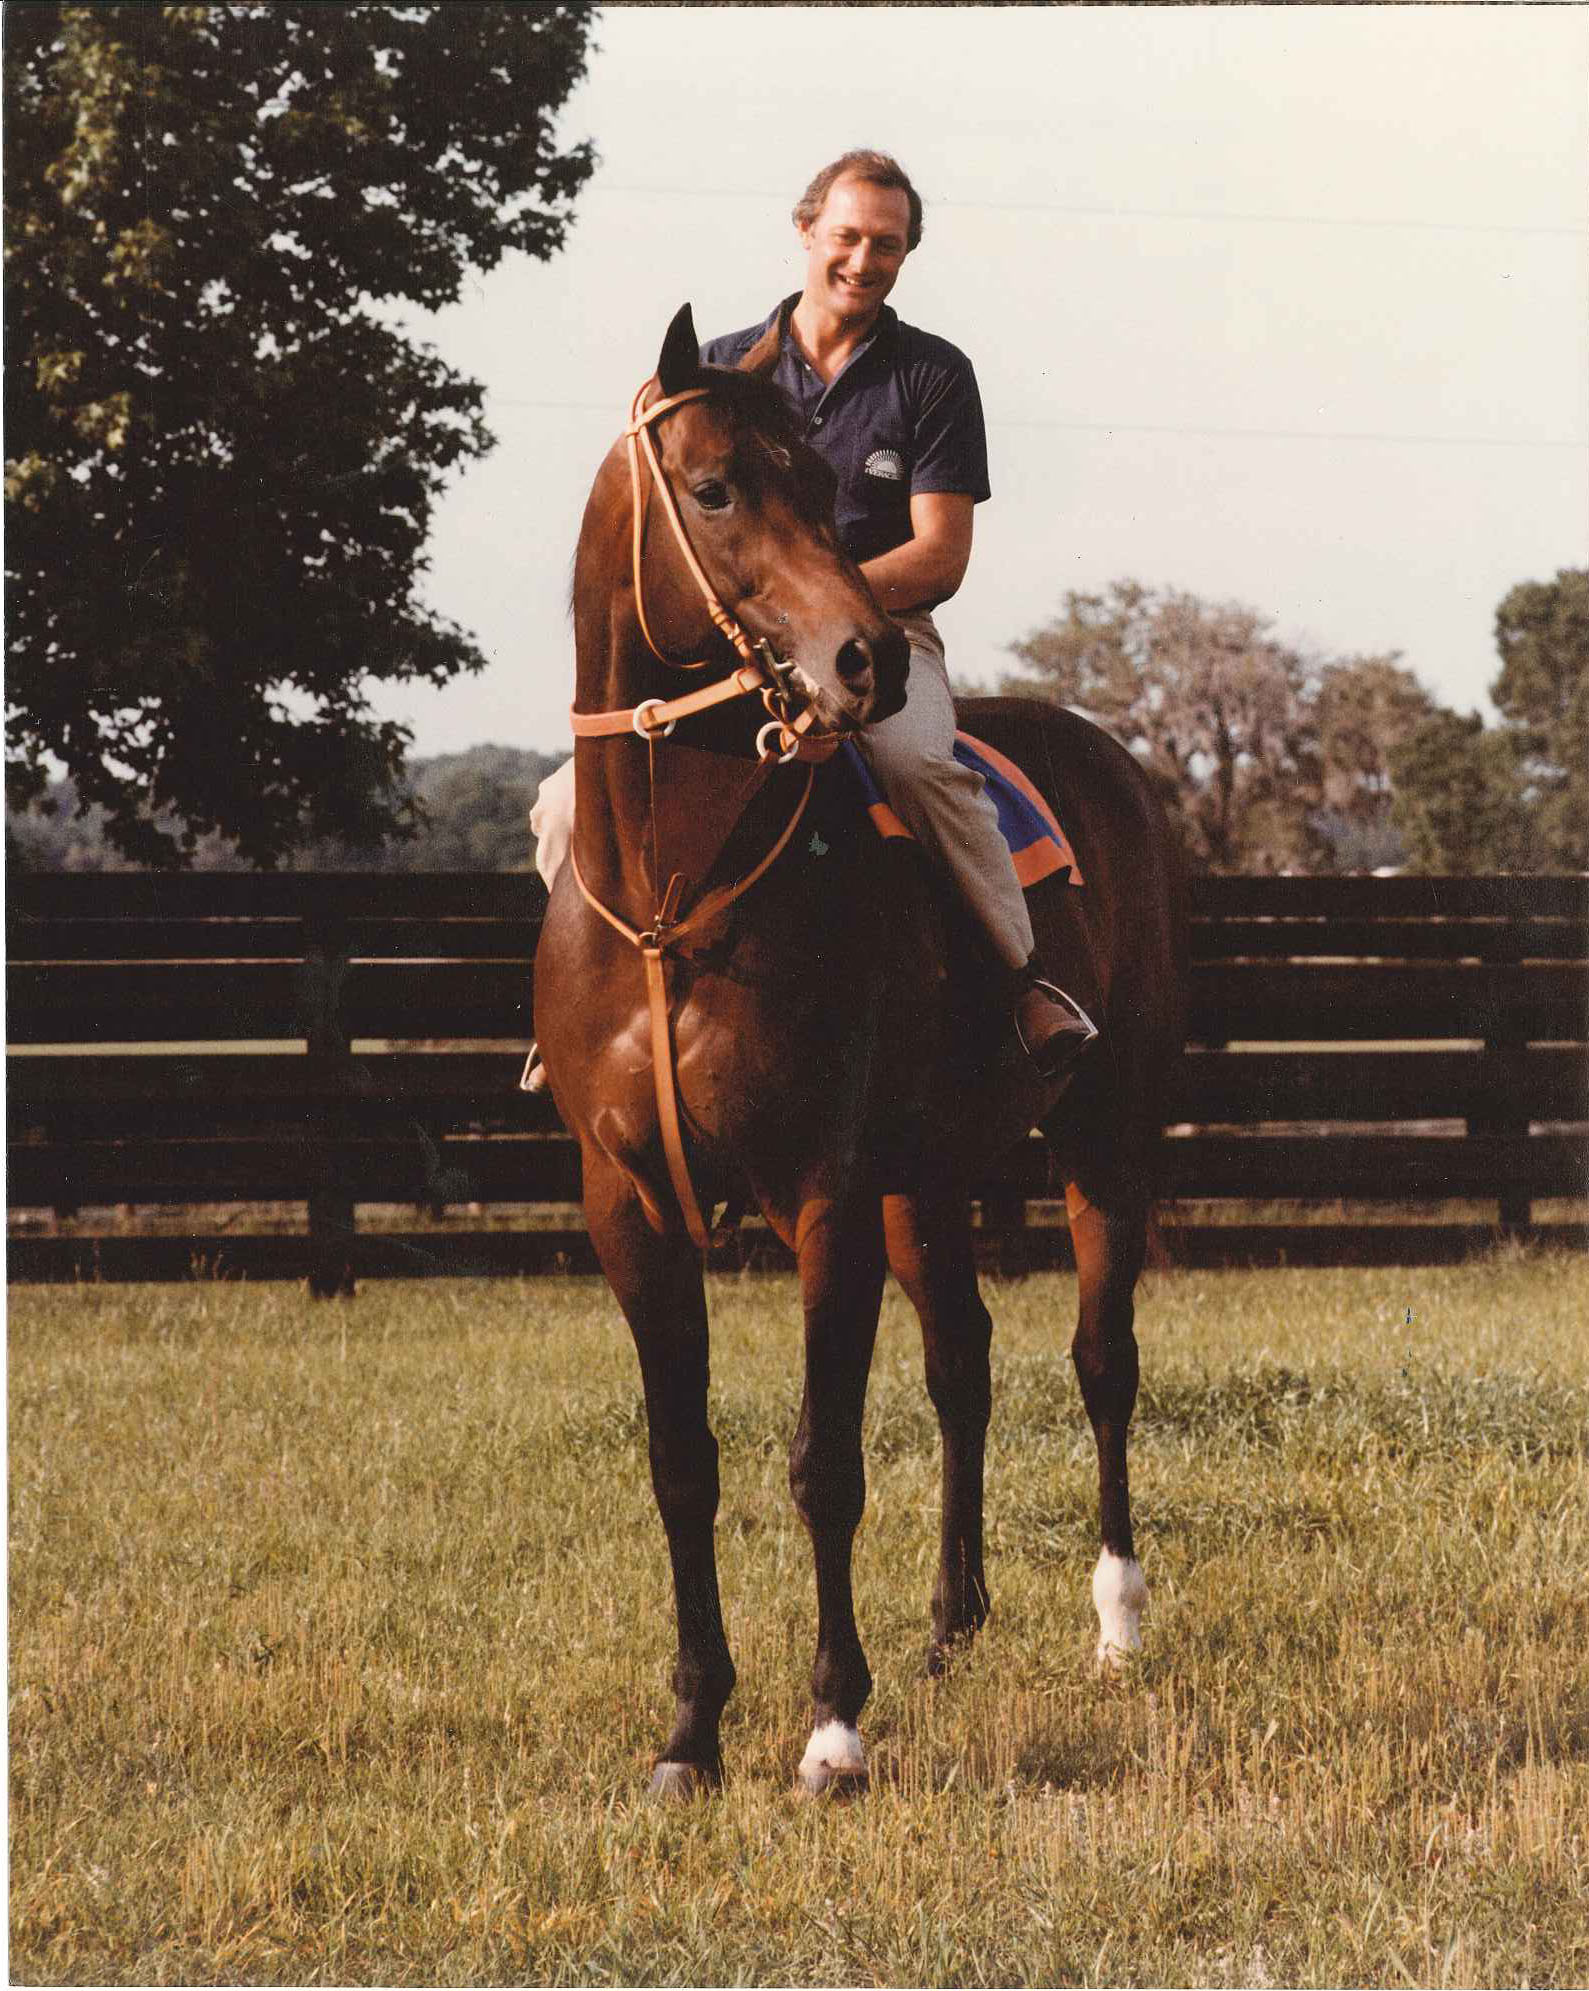 Roger Attfield on horseback (Woodbine Photo)